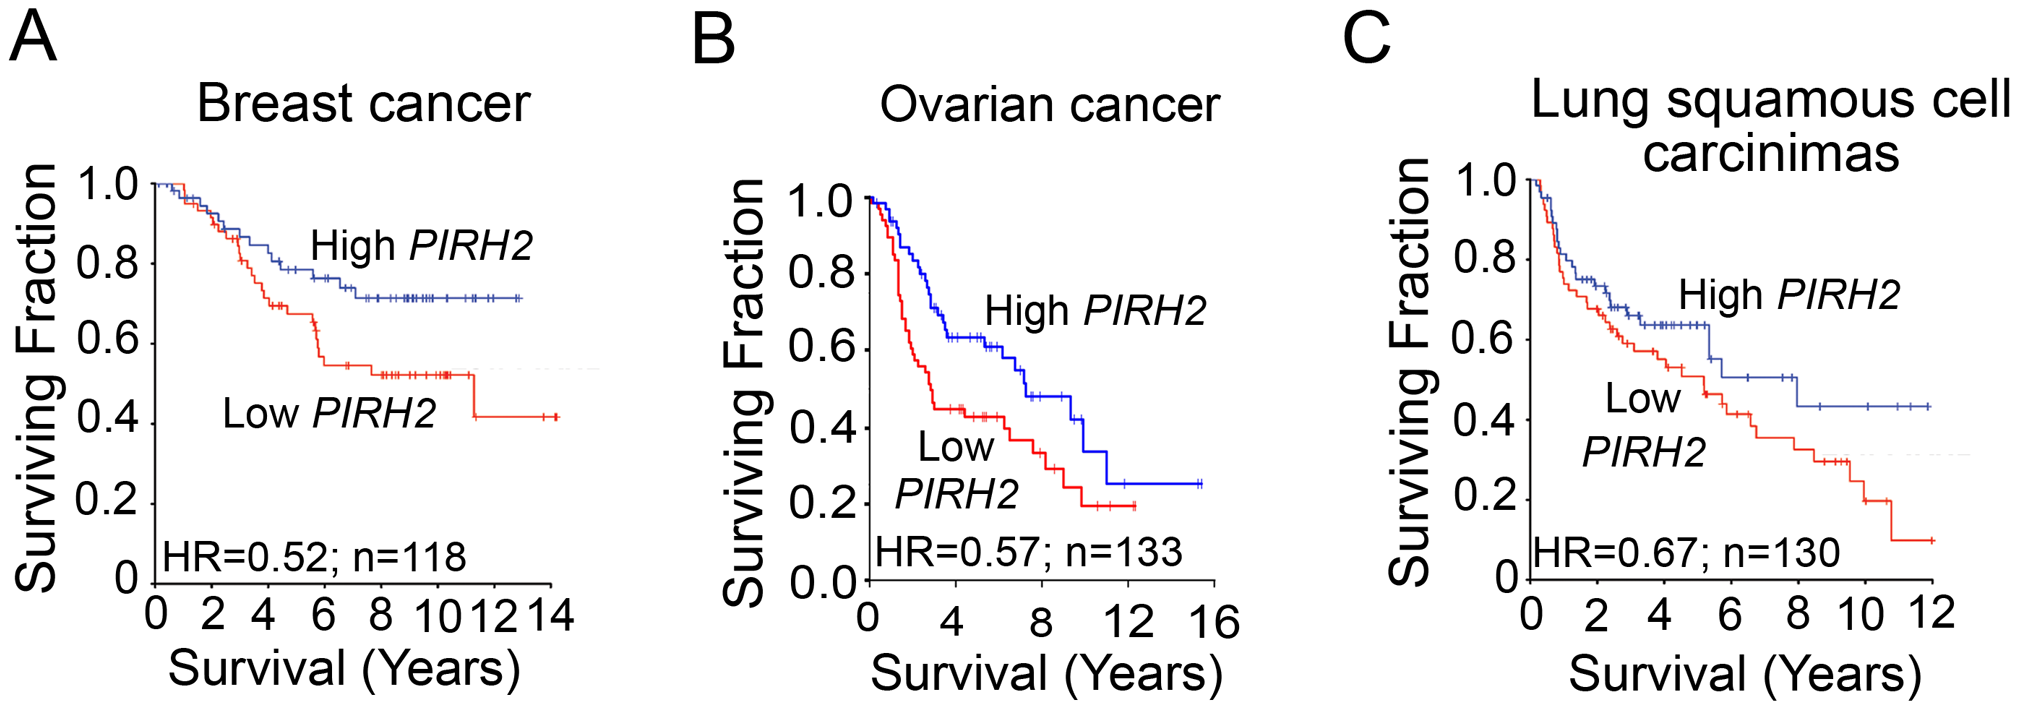 Downregulation of PIRH2 Associates with Short-Term Survival of Patients with Breast Cancer, Ovarian Cancer, or Squamous Cell Carcinomas of the Lung.